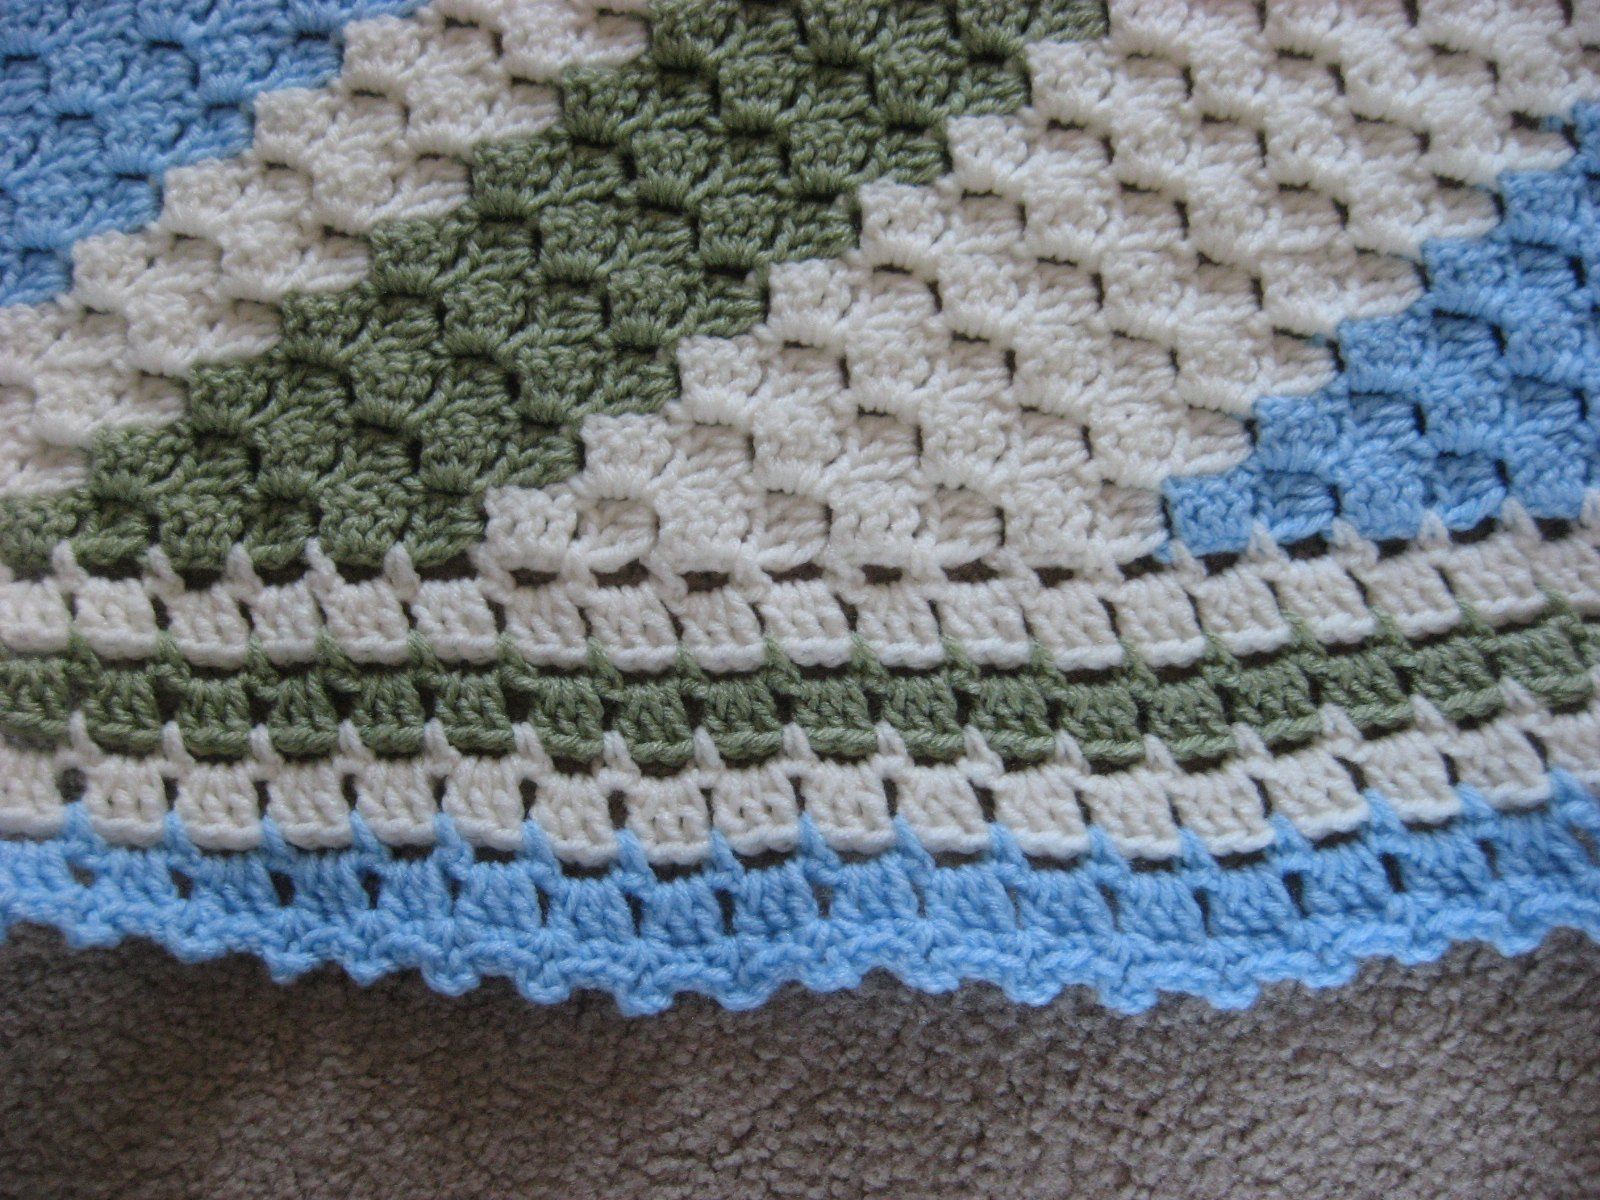 Hooked on Needles: Summertime Crochet ~ No complaints here!